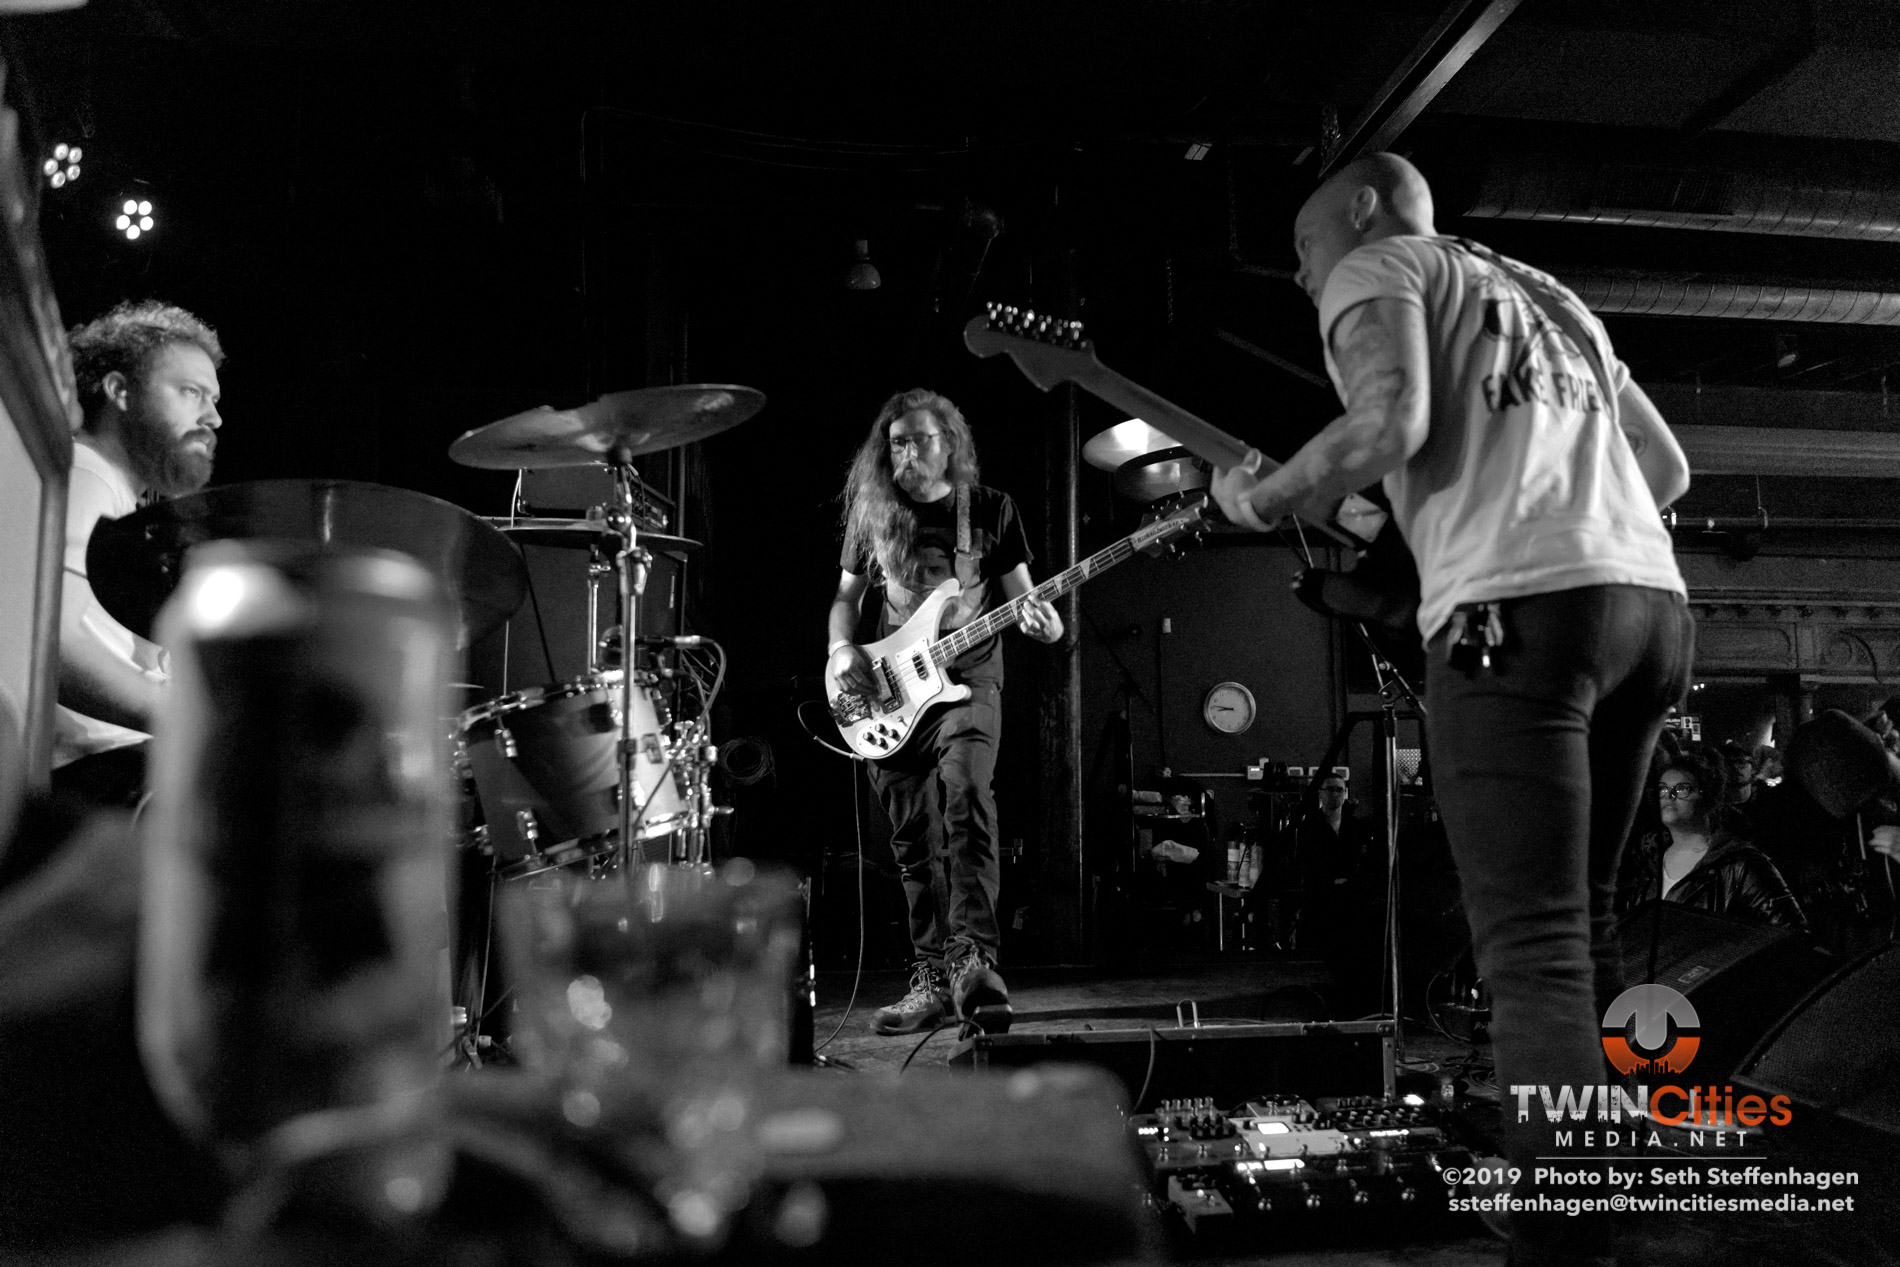 March 27, 2019 - Saint Paul, Minnesota, United States - Grogus live in concert at the Turf Club opening for Thou and Emma Ruth Rundle.  (Photo by Seth Steffenhagen/Steffenhagen Photography)